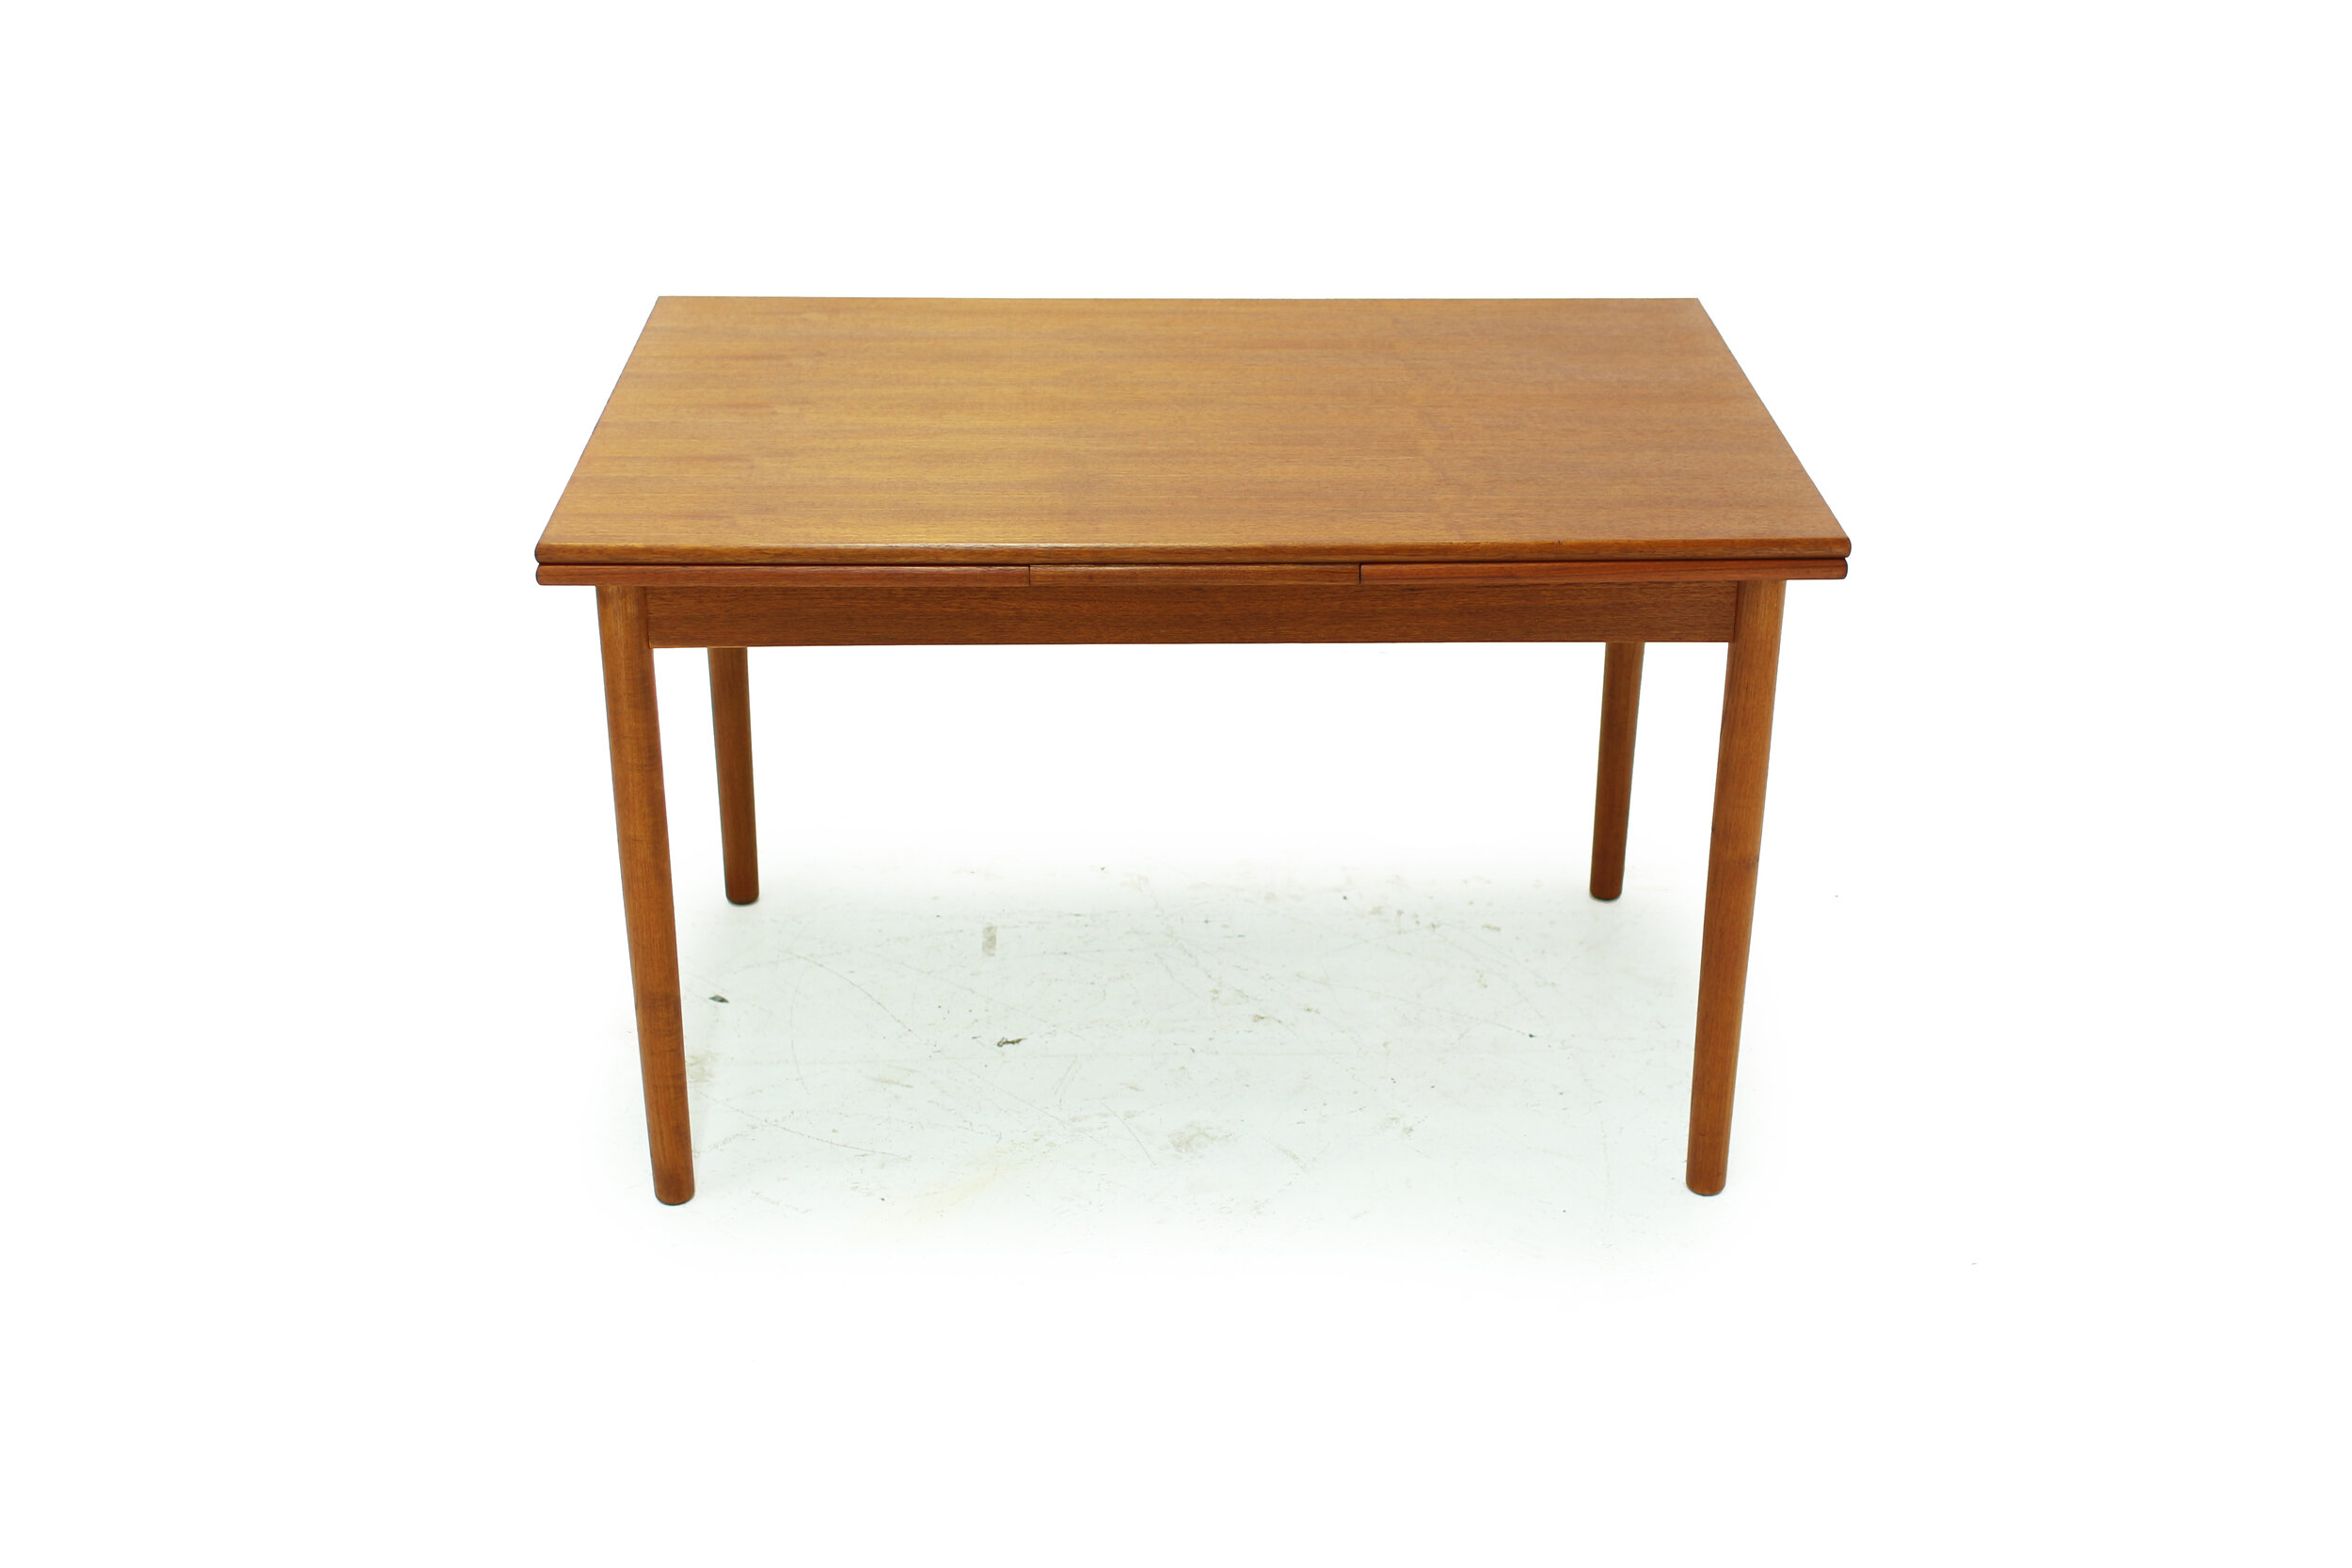 Danish Teak Dining Table with Extentions (1).jpg